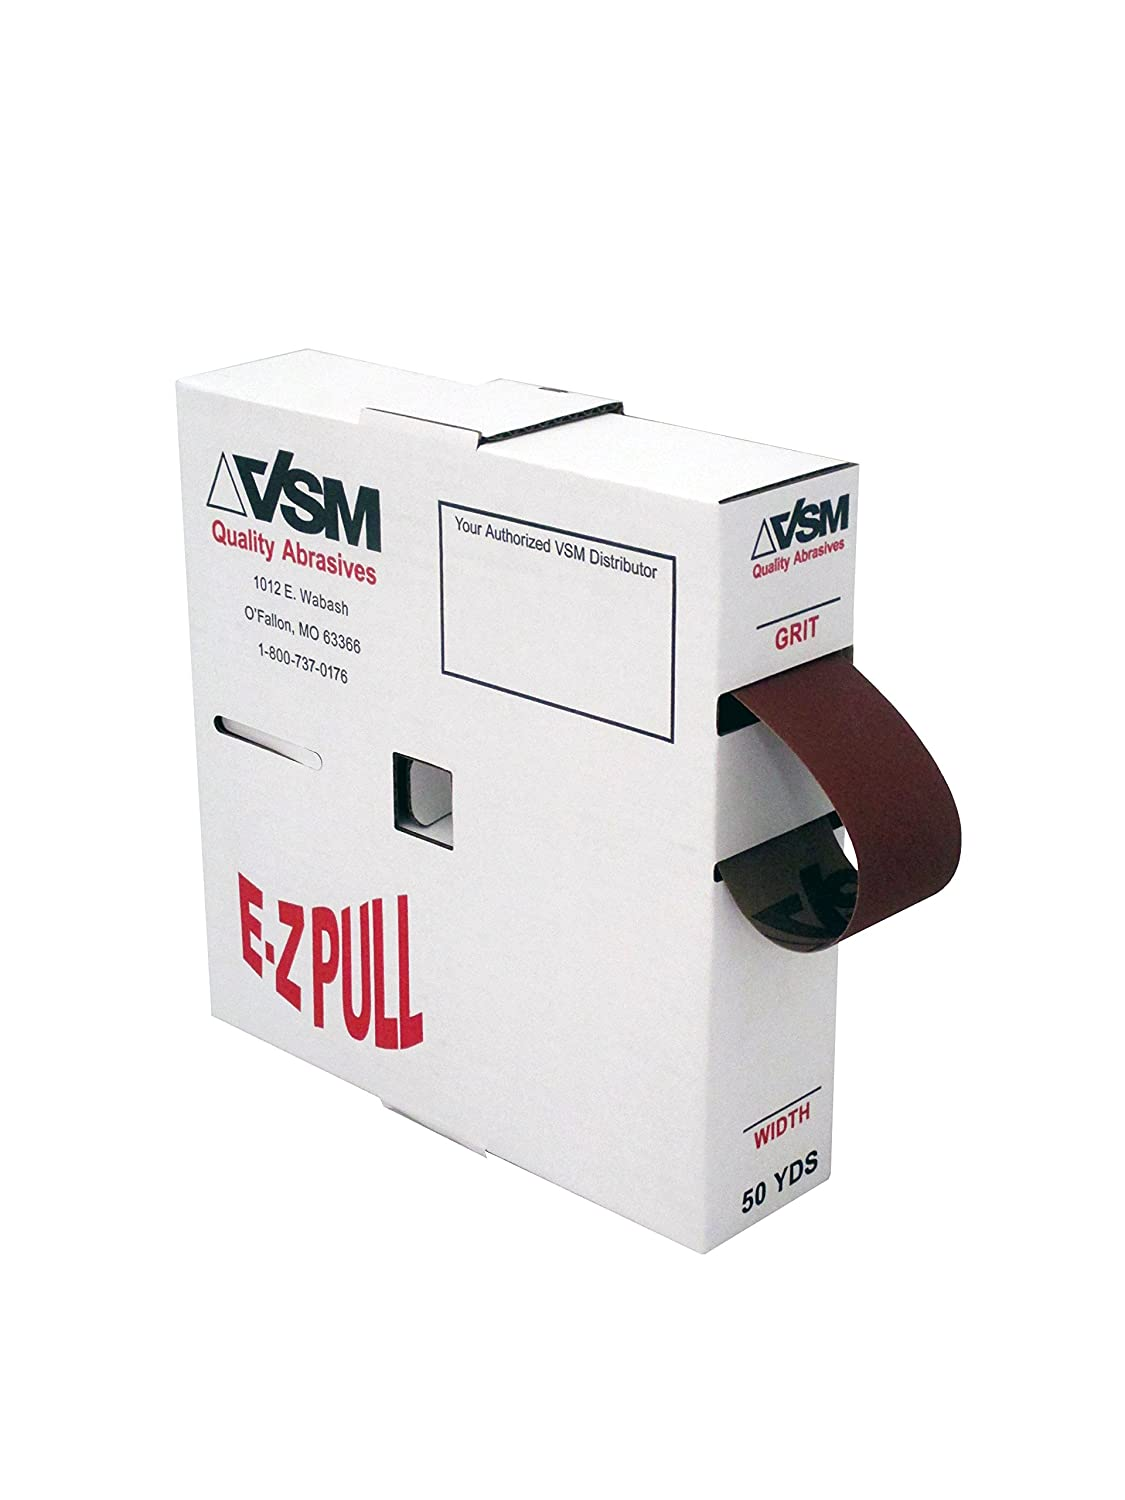 1 x 50 yd VSM 314392 Abrasives Cloth Roll 50 Grit 1 x 50 yd Roll VSM Abrasives Co.